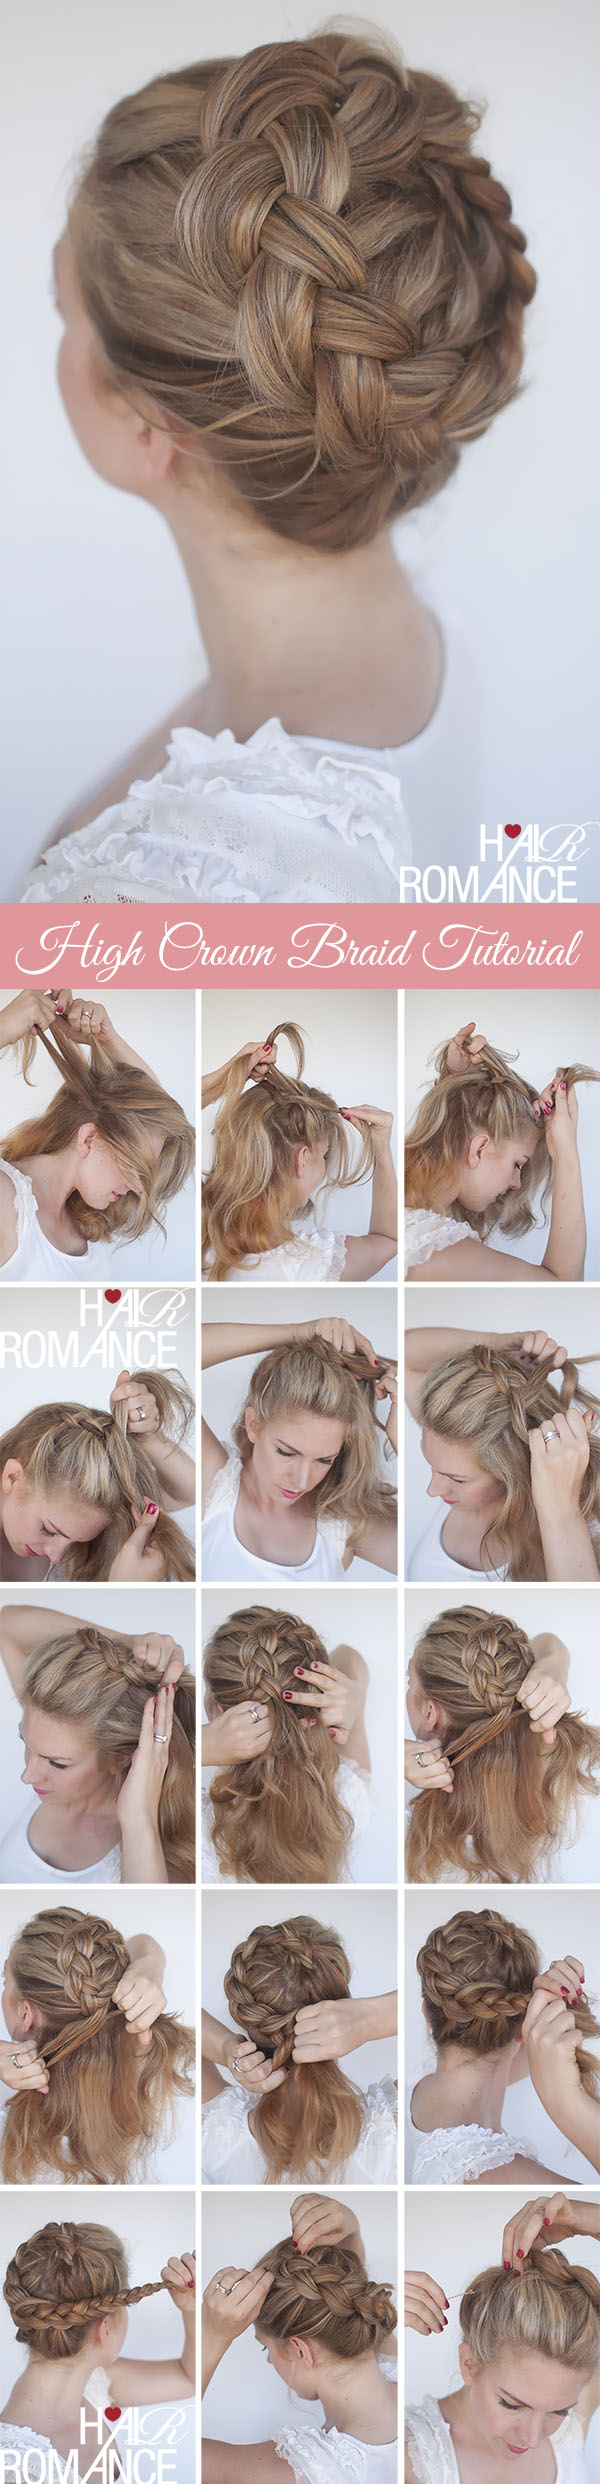 High Braided Crown Tutorial